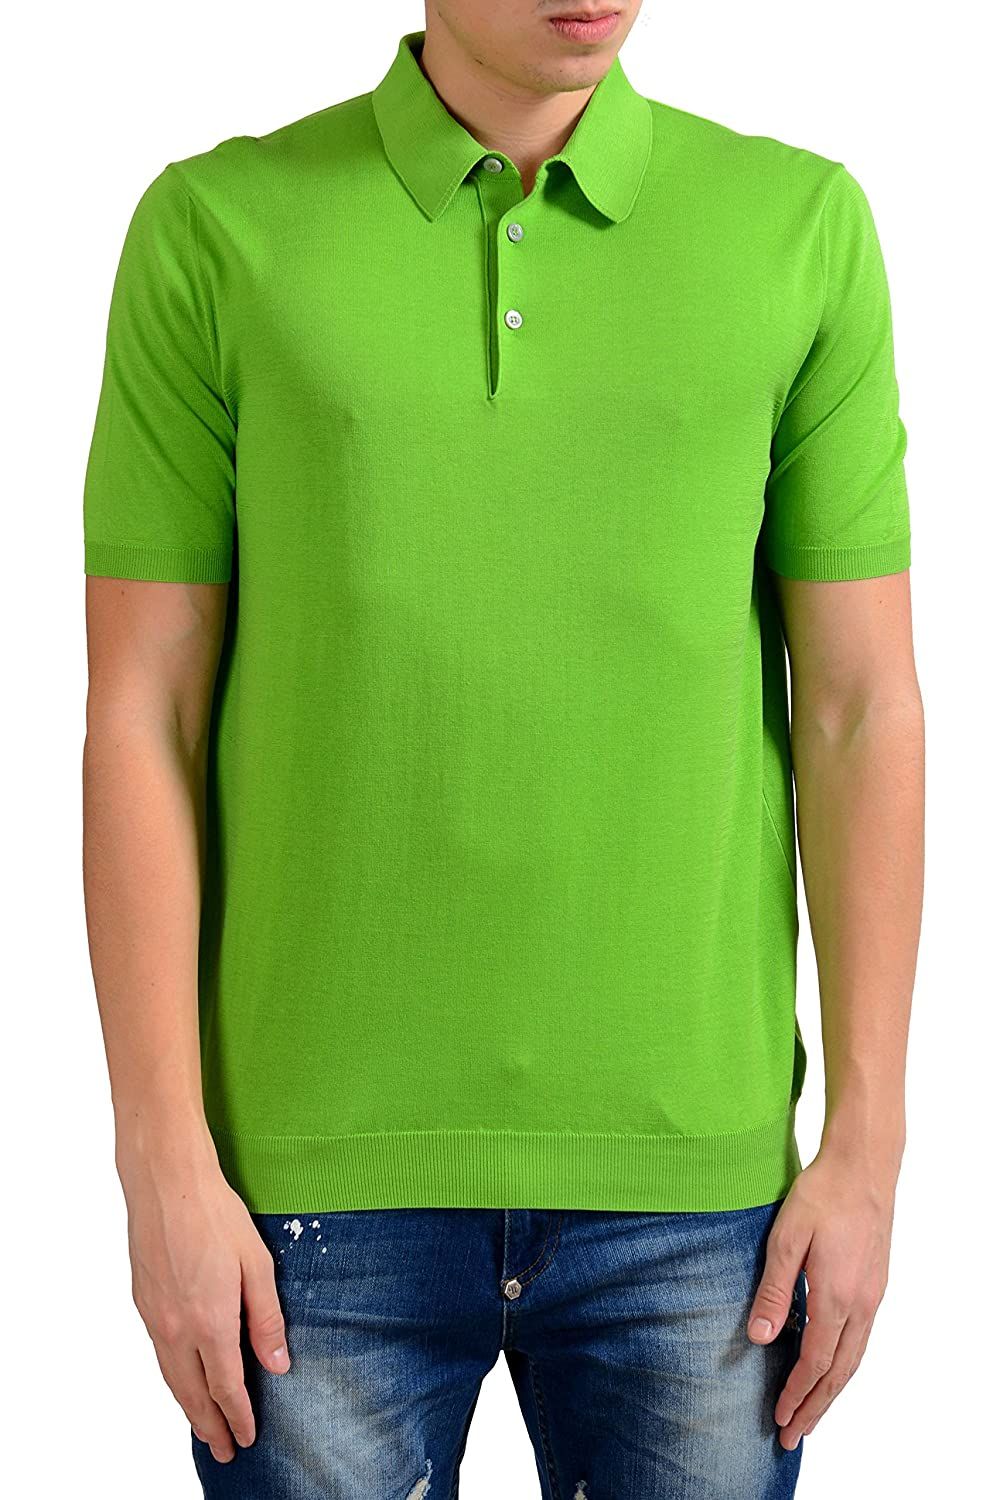 Malo Mens Lime Green Knitted Short Sleeve Polo Shirt Us L It 52 At